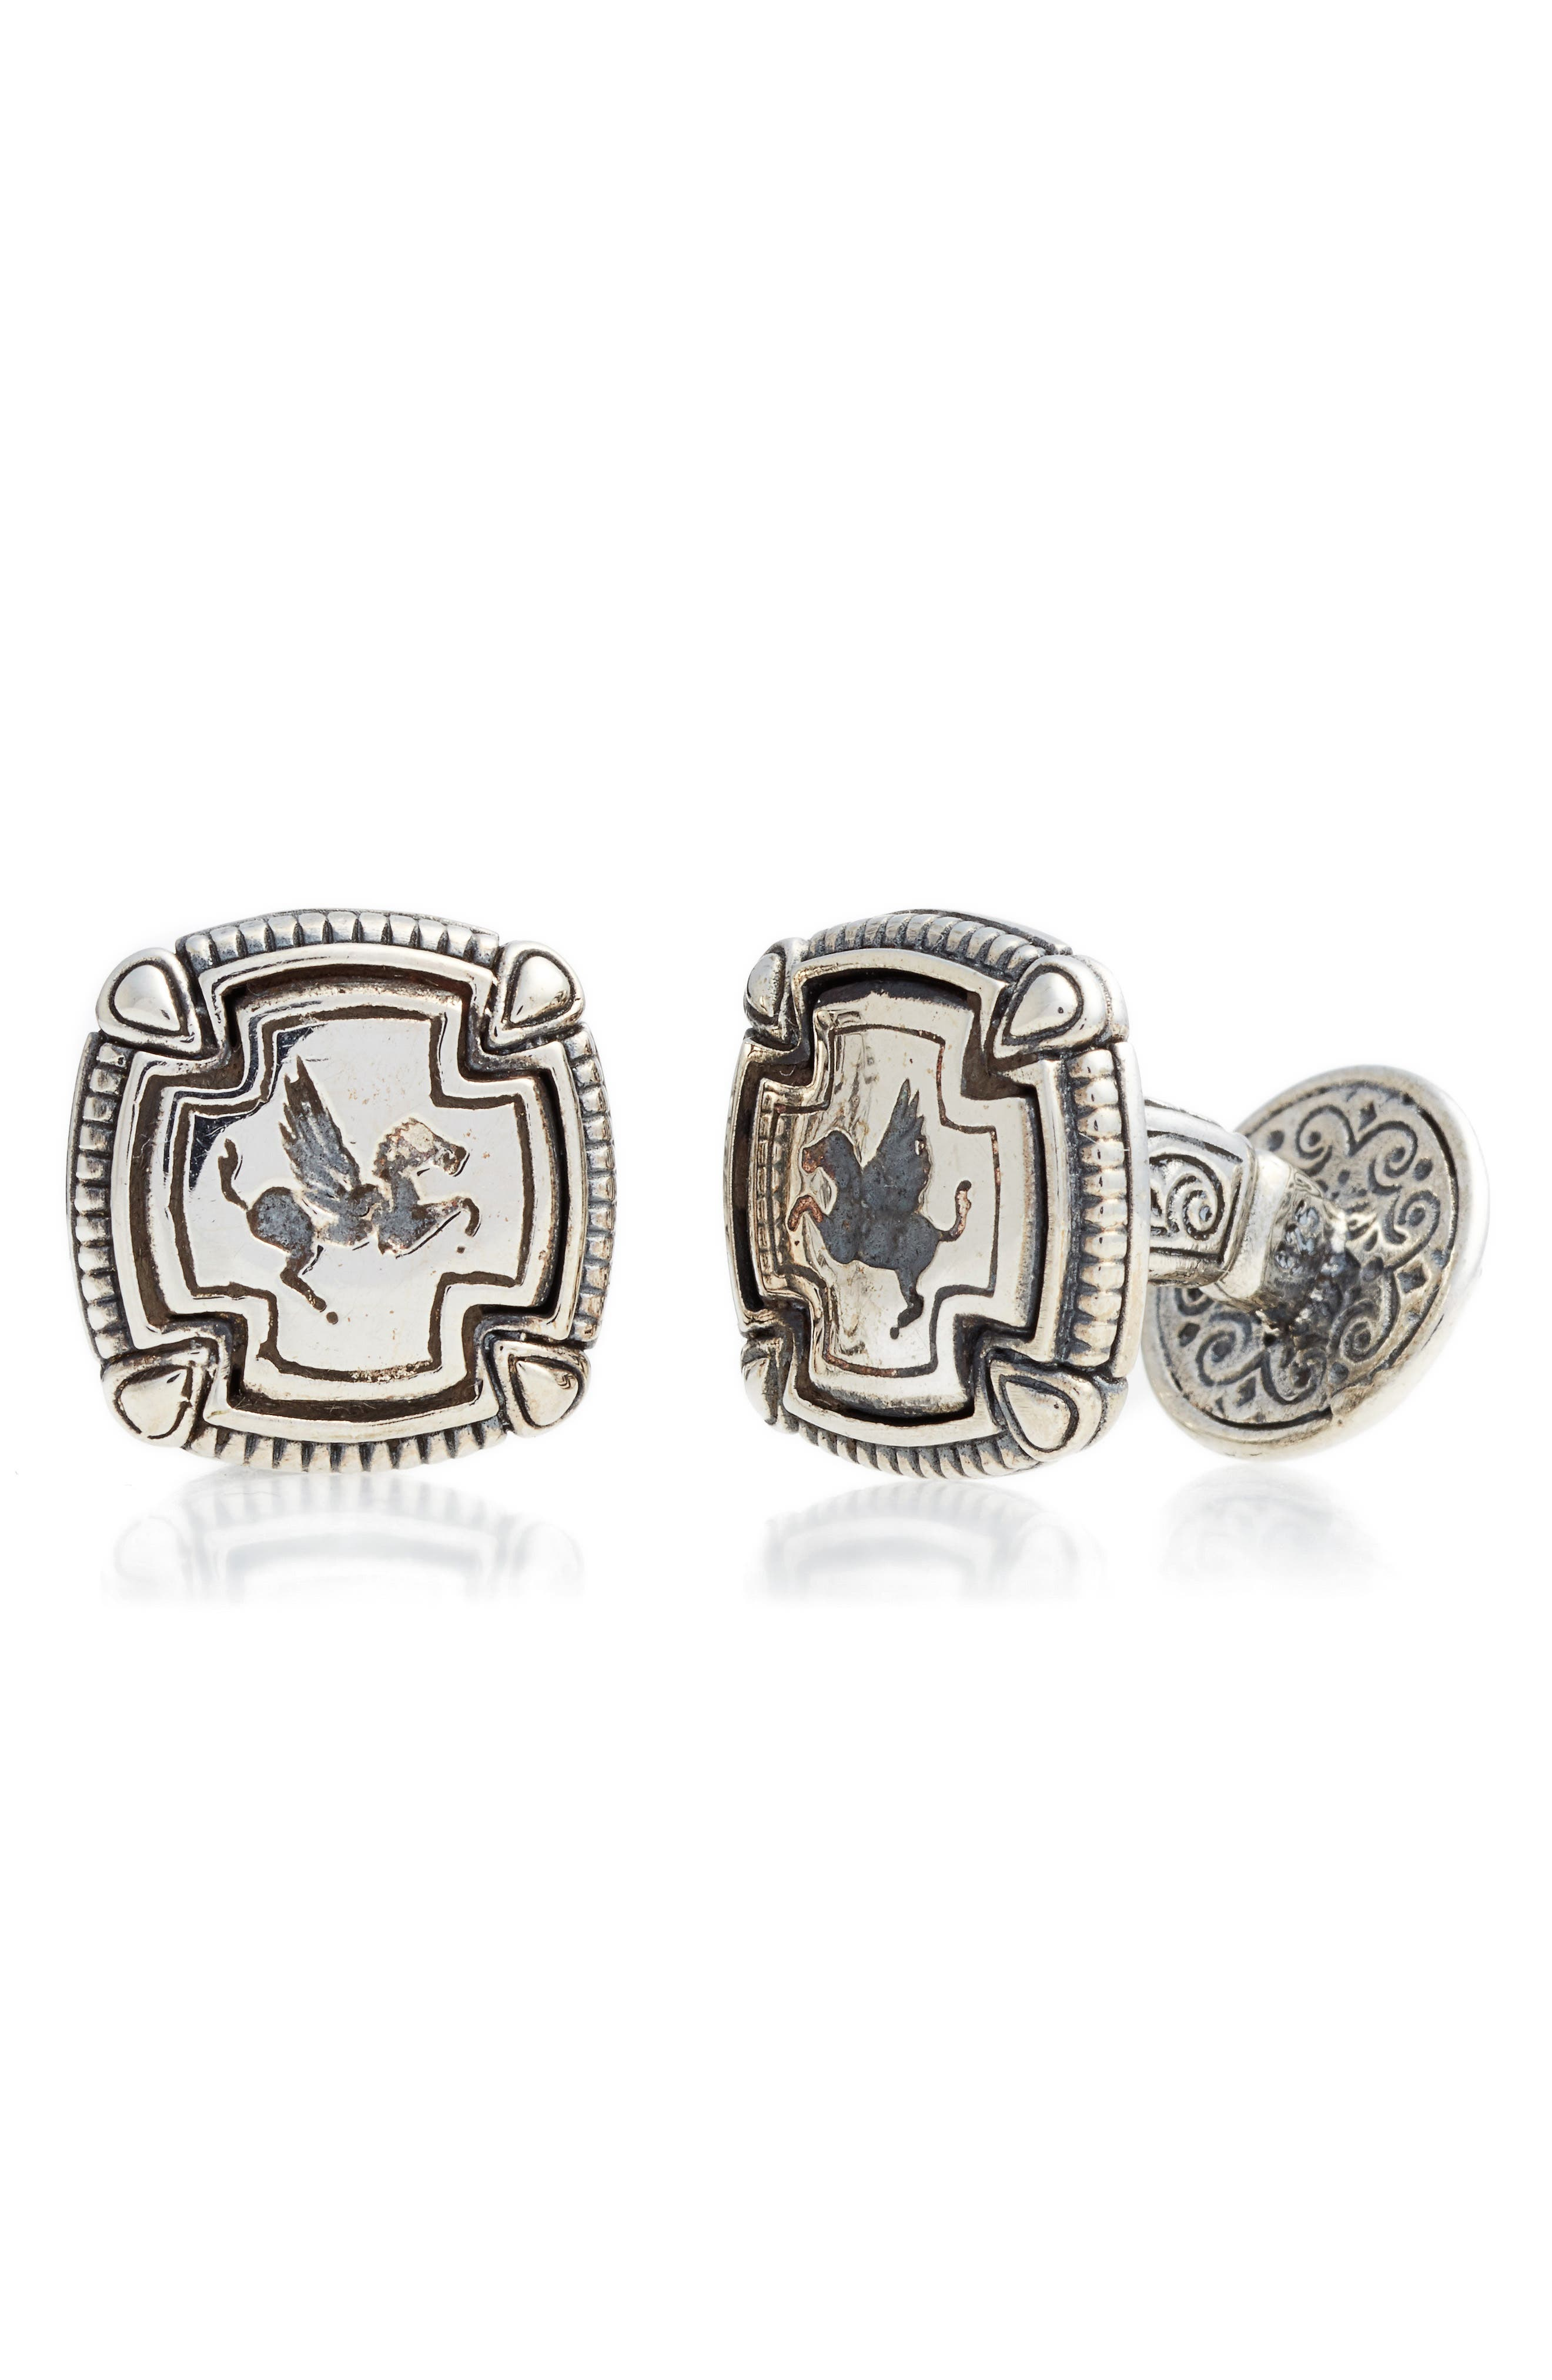 Pegasus-engraved Maltese crosses boost the antiquated charm of these sterling-silver cuff links meticulously handcrafted in Athens. Style Name: Konstantino Classics Cuff Links. Style Number: 5400498. Available in stores.